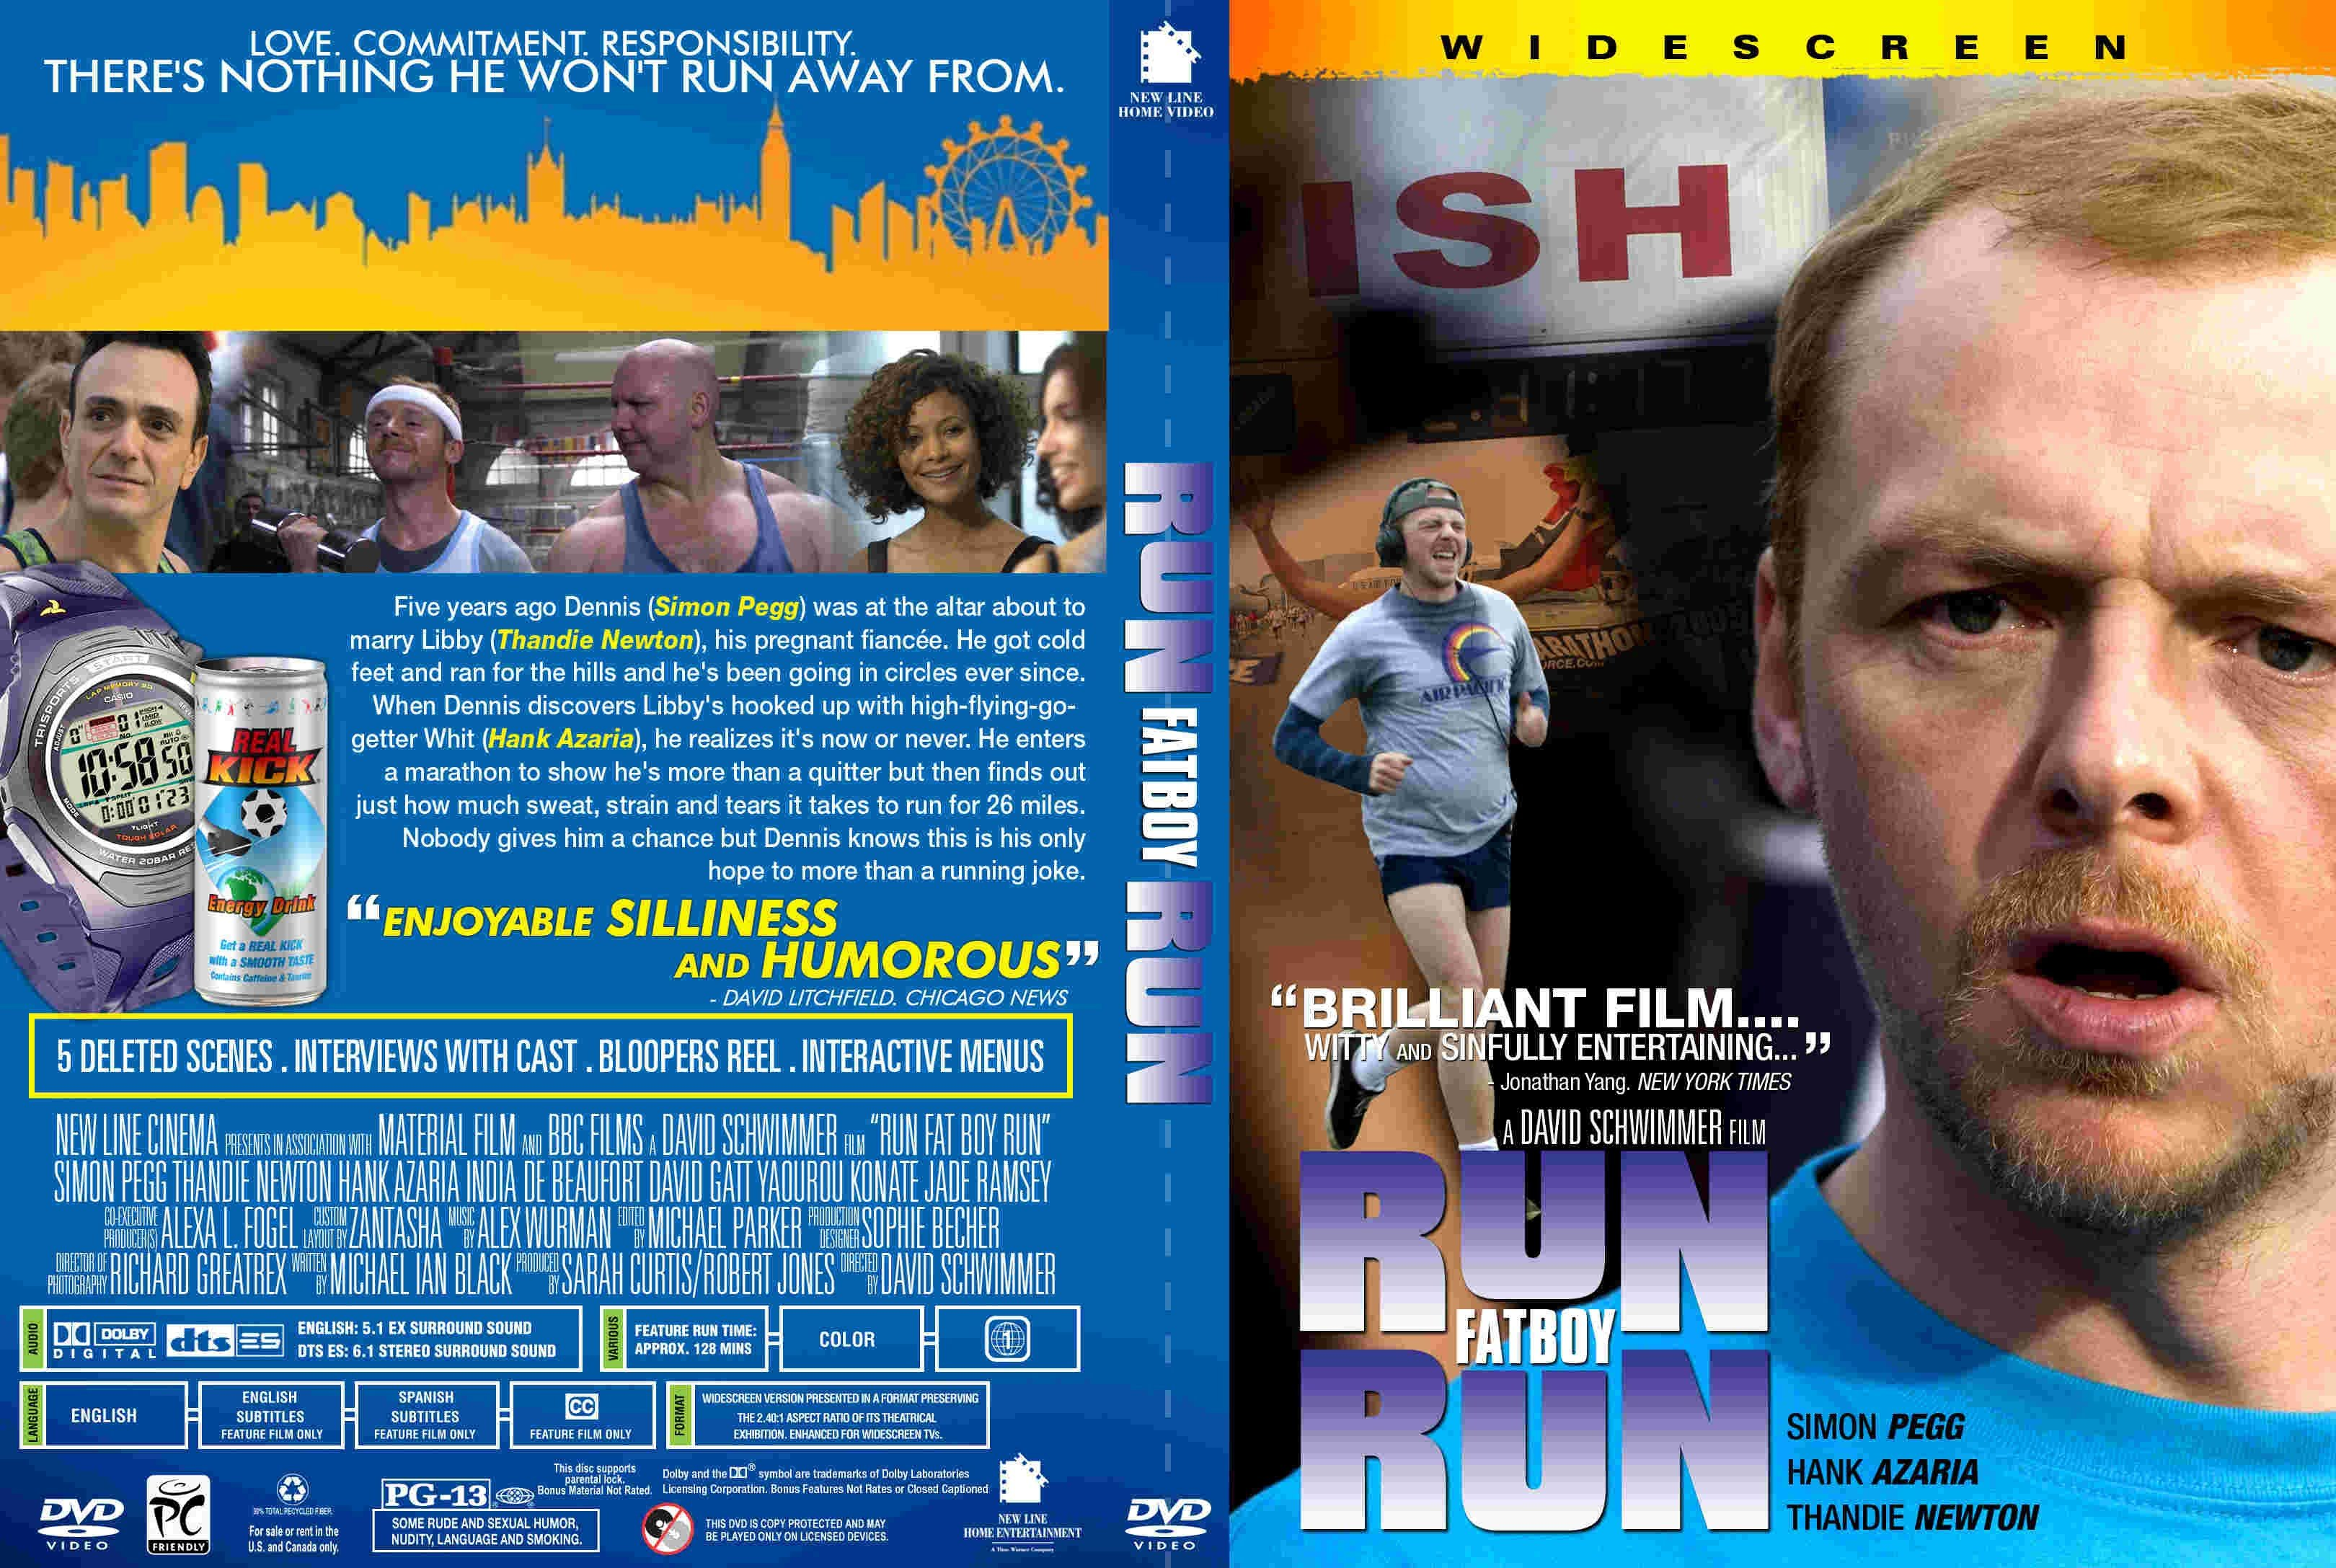 Run Fatboy Run 2007 R2 R1 Dvd Covers And Labels